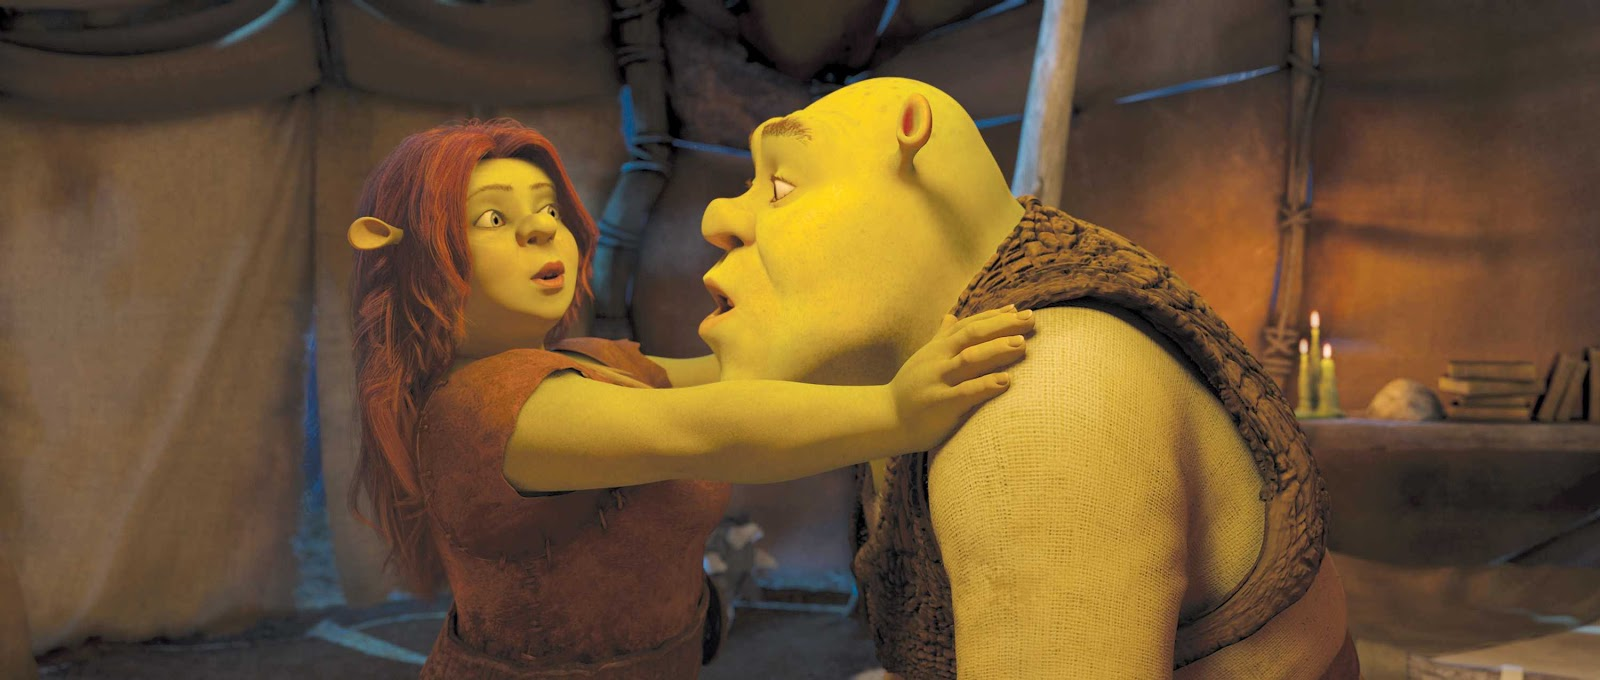 Shrek and Fiona in the alternate universe